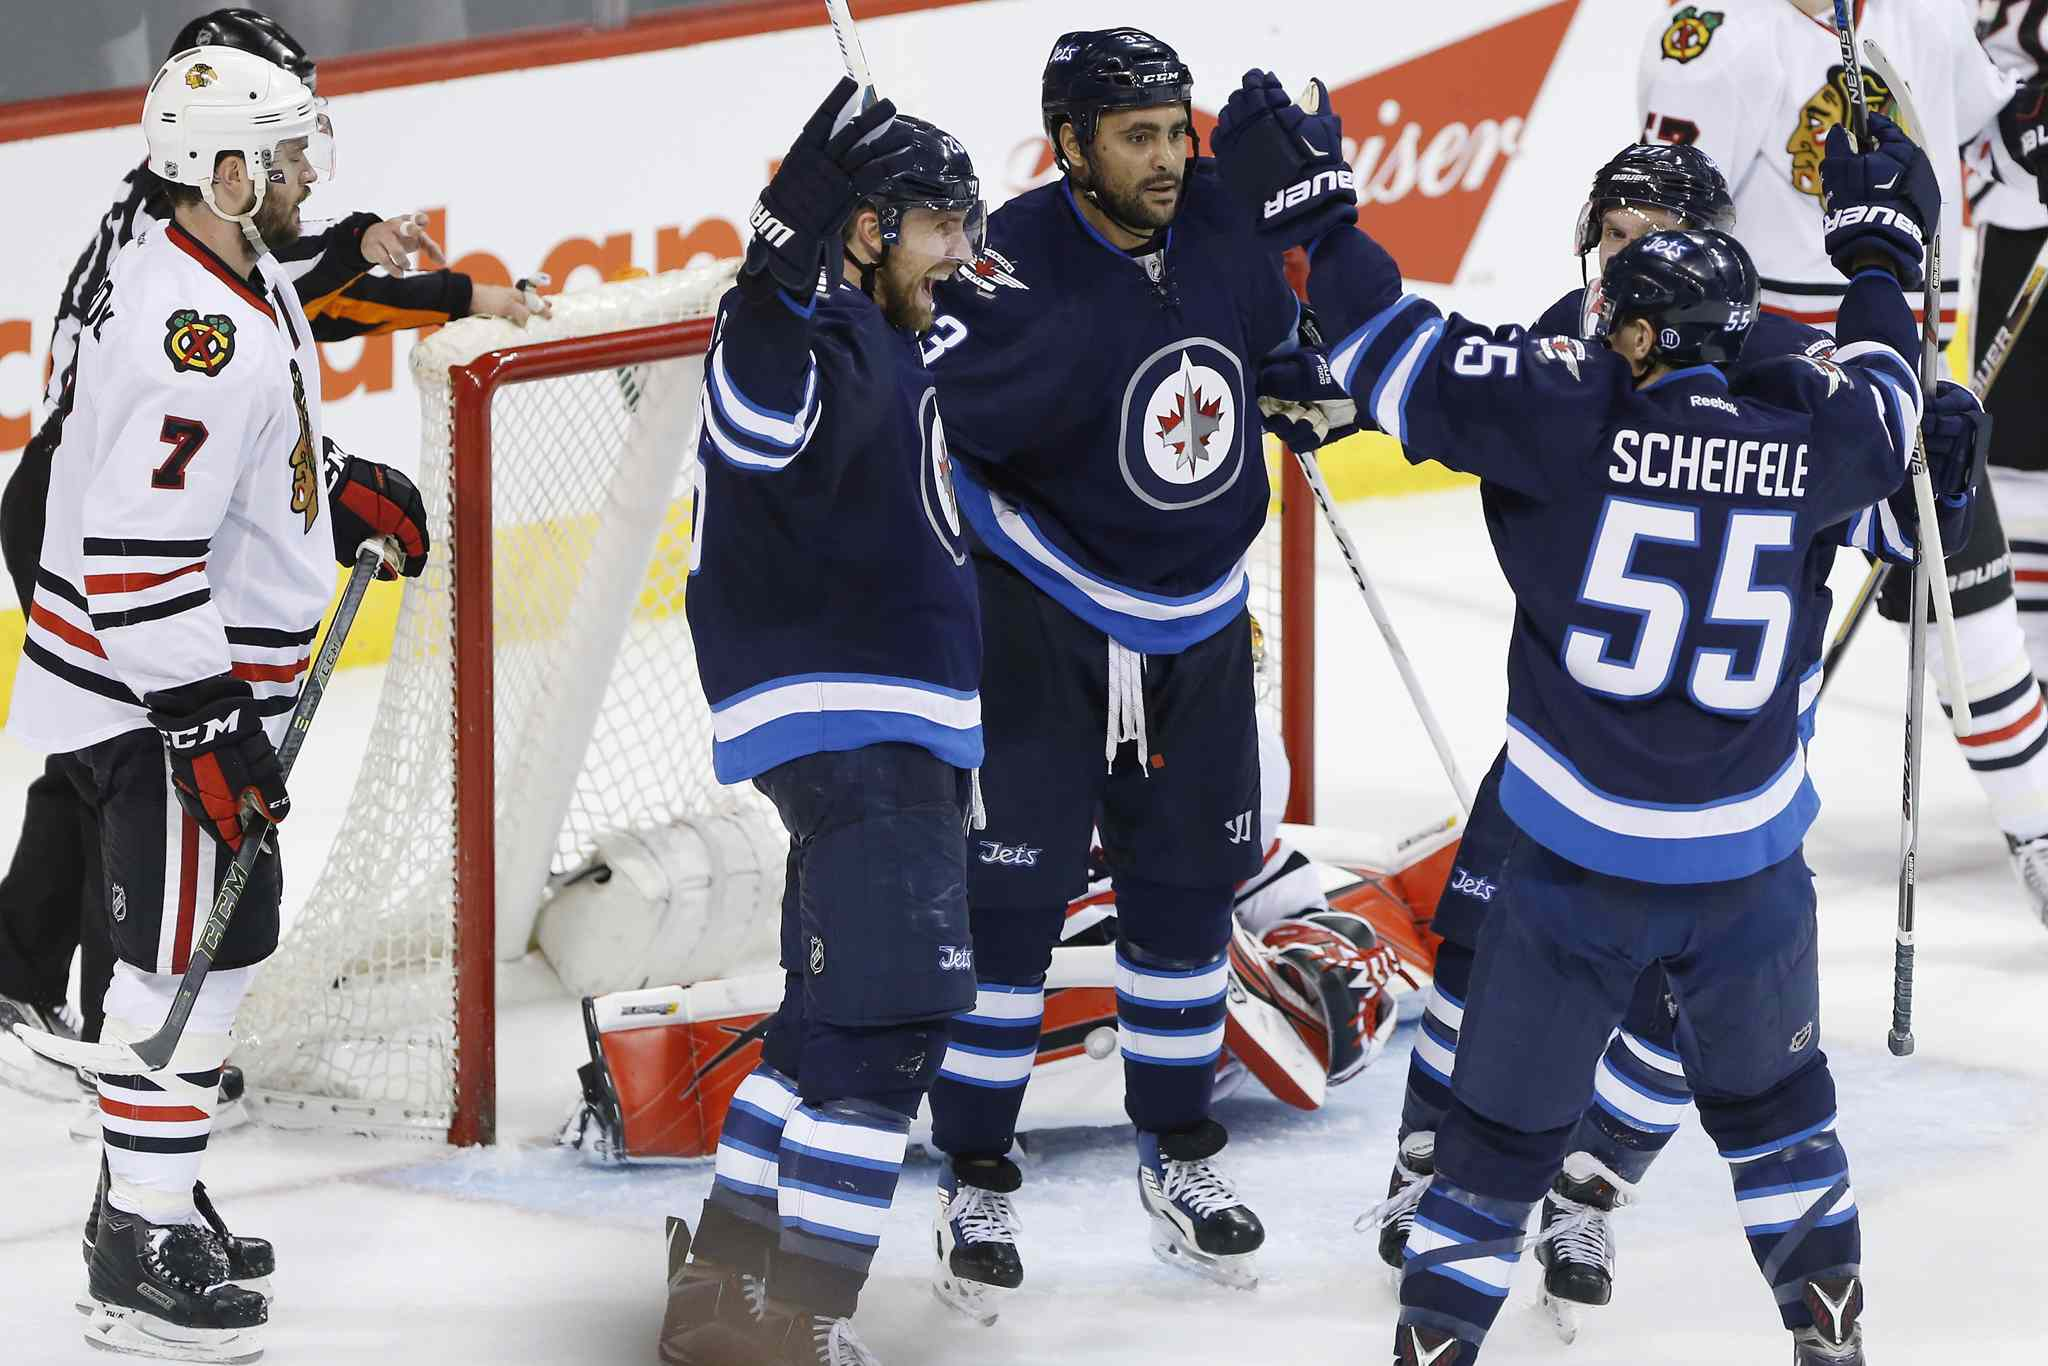 They may not take down the Chicago Blackhawks, but the Winnipeg Jets will make the playoffs in 2016-17